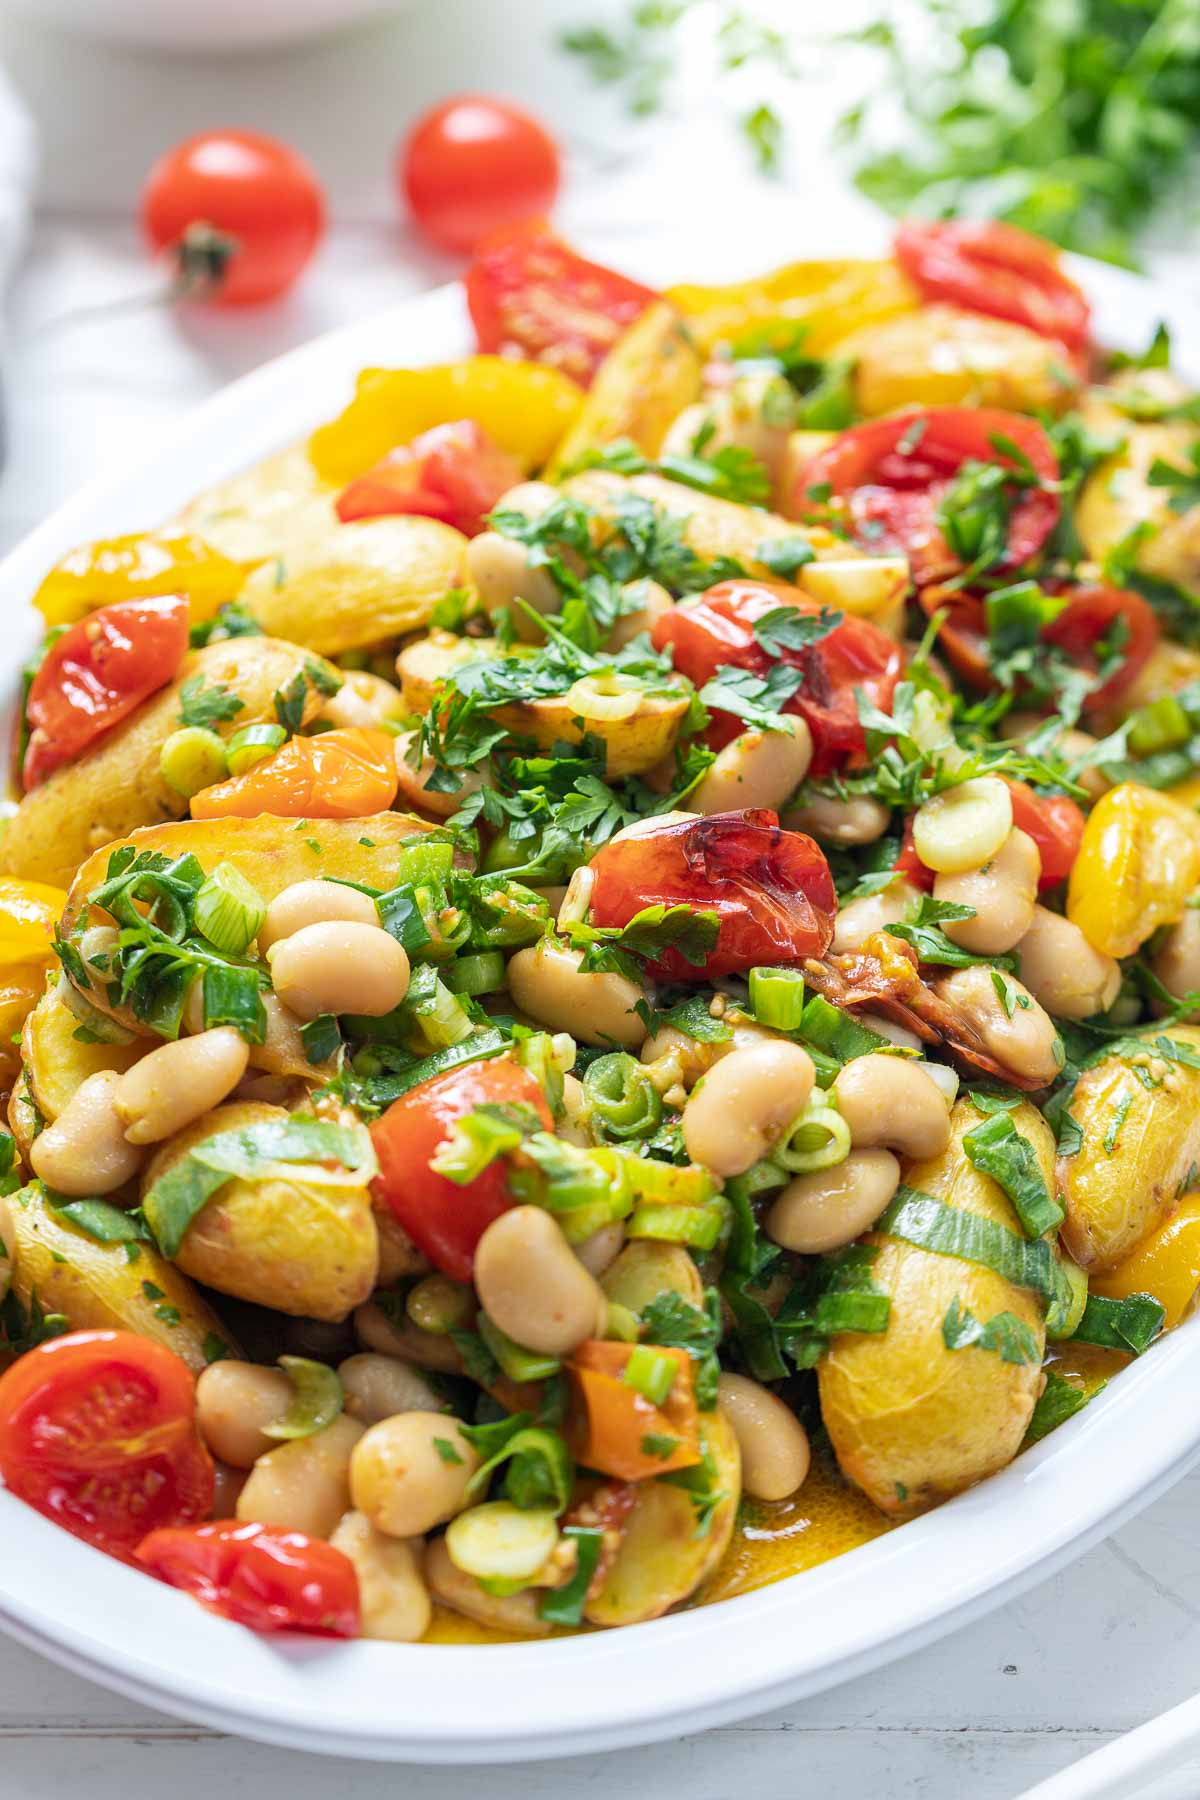 Roasted Tomato and Potato Salad with Butter Beans